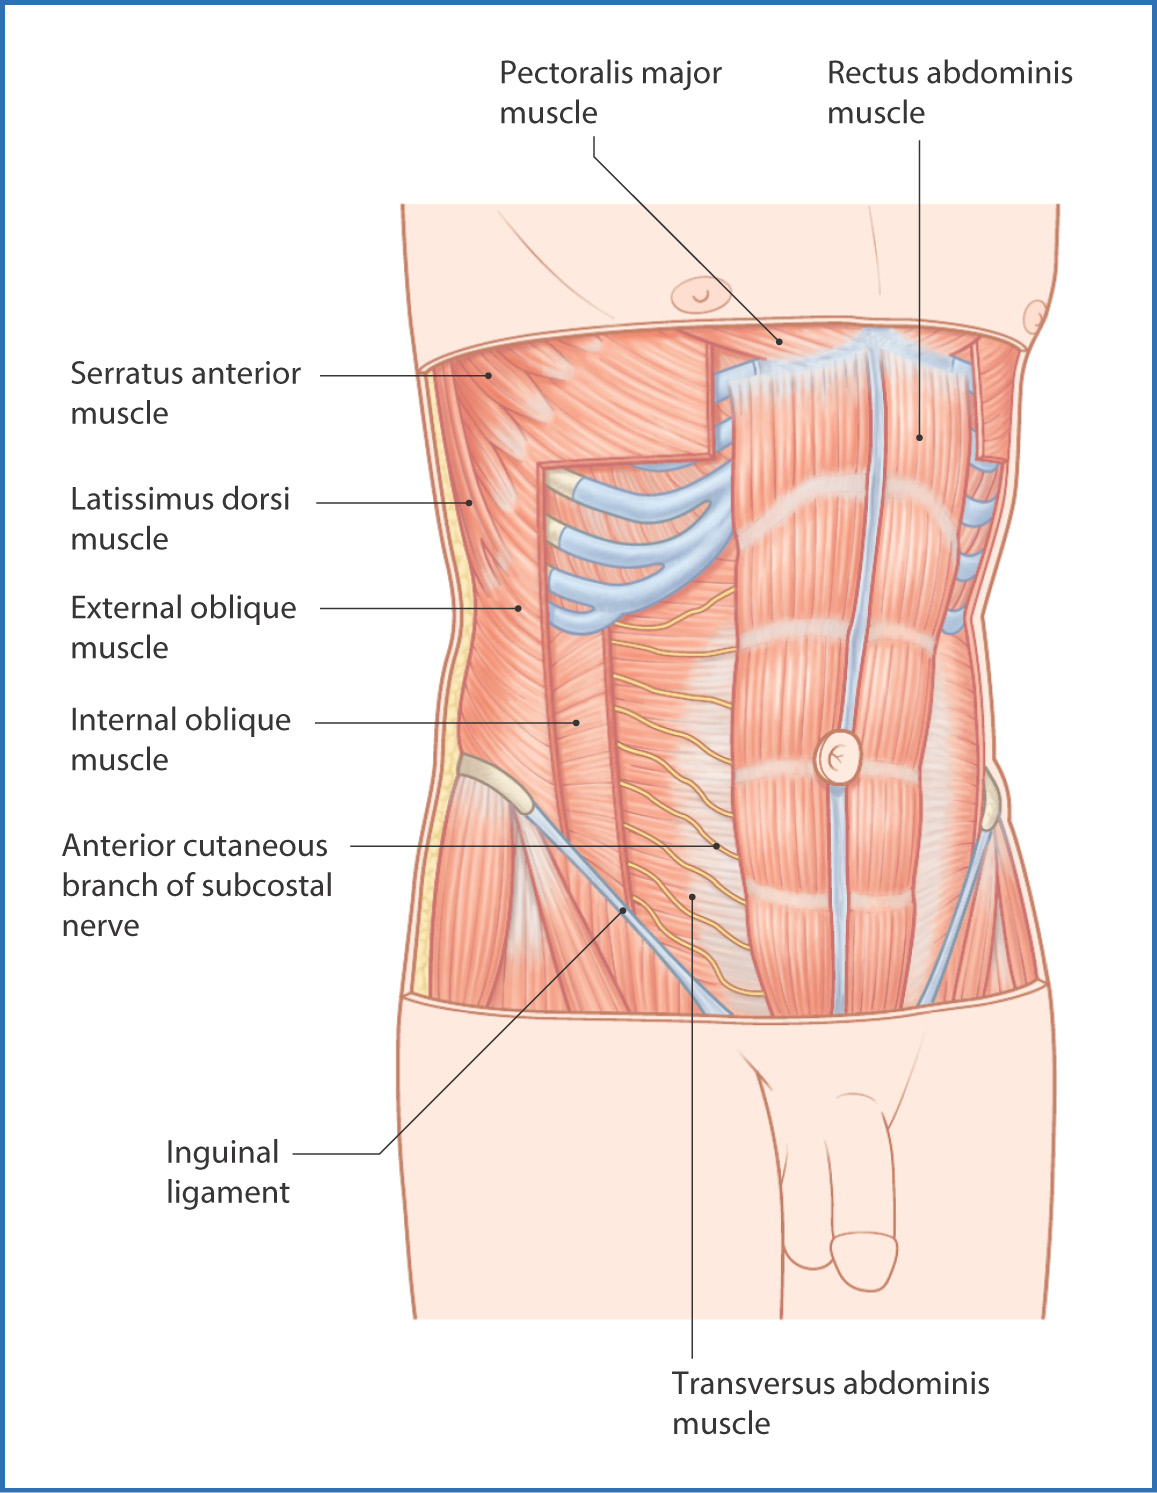 Anterolateral abdominal wall and groin basicmedical key rib cage to the pelvic inlet the rectus abdominis is covered by several layers of fascia derived from three anterolateral abdominal muscles fig ccuart Image collections